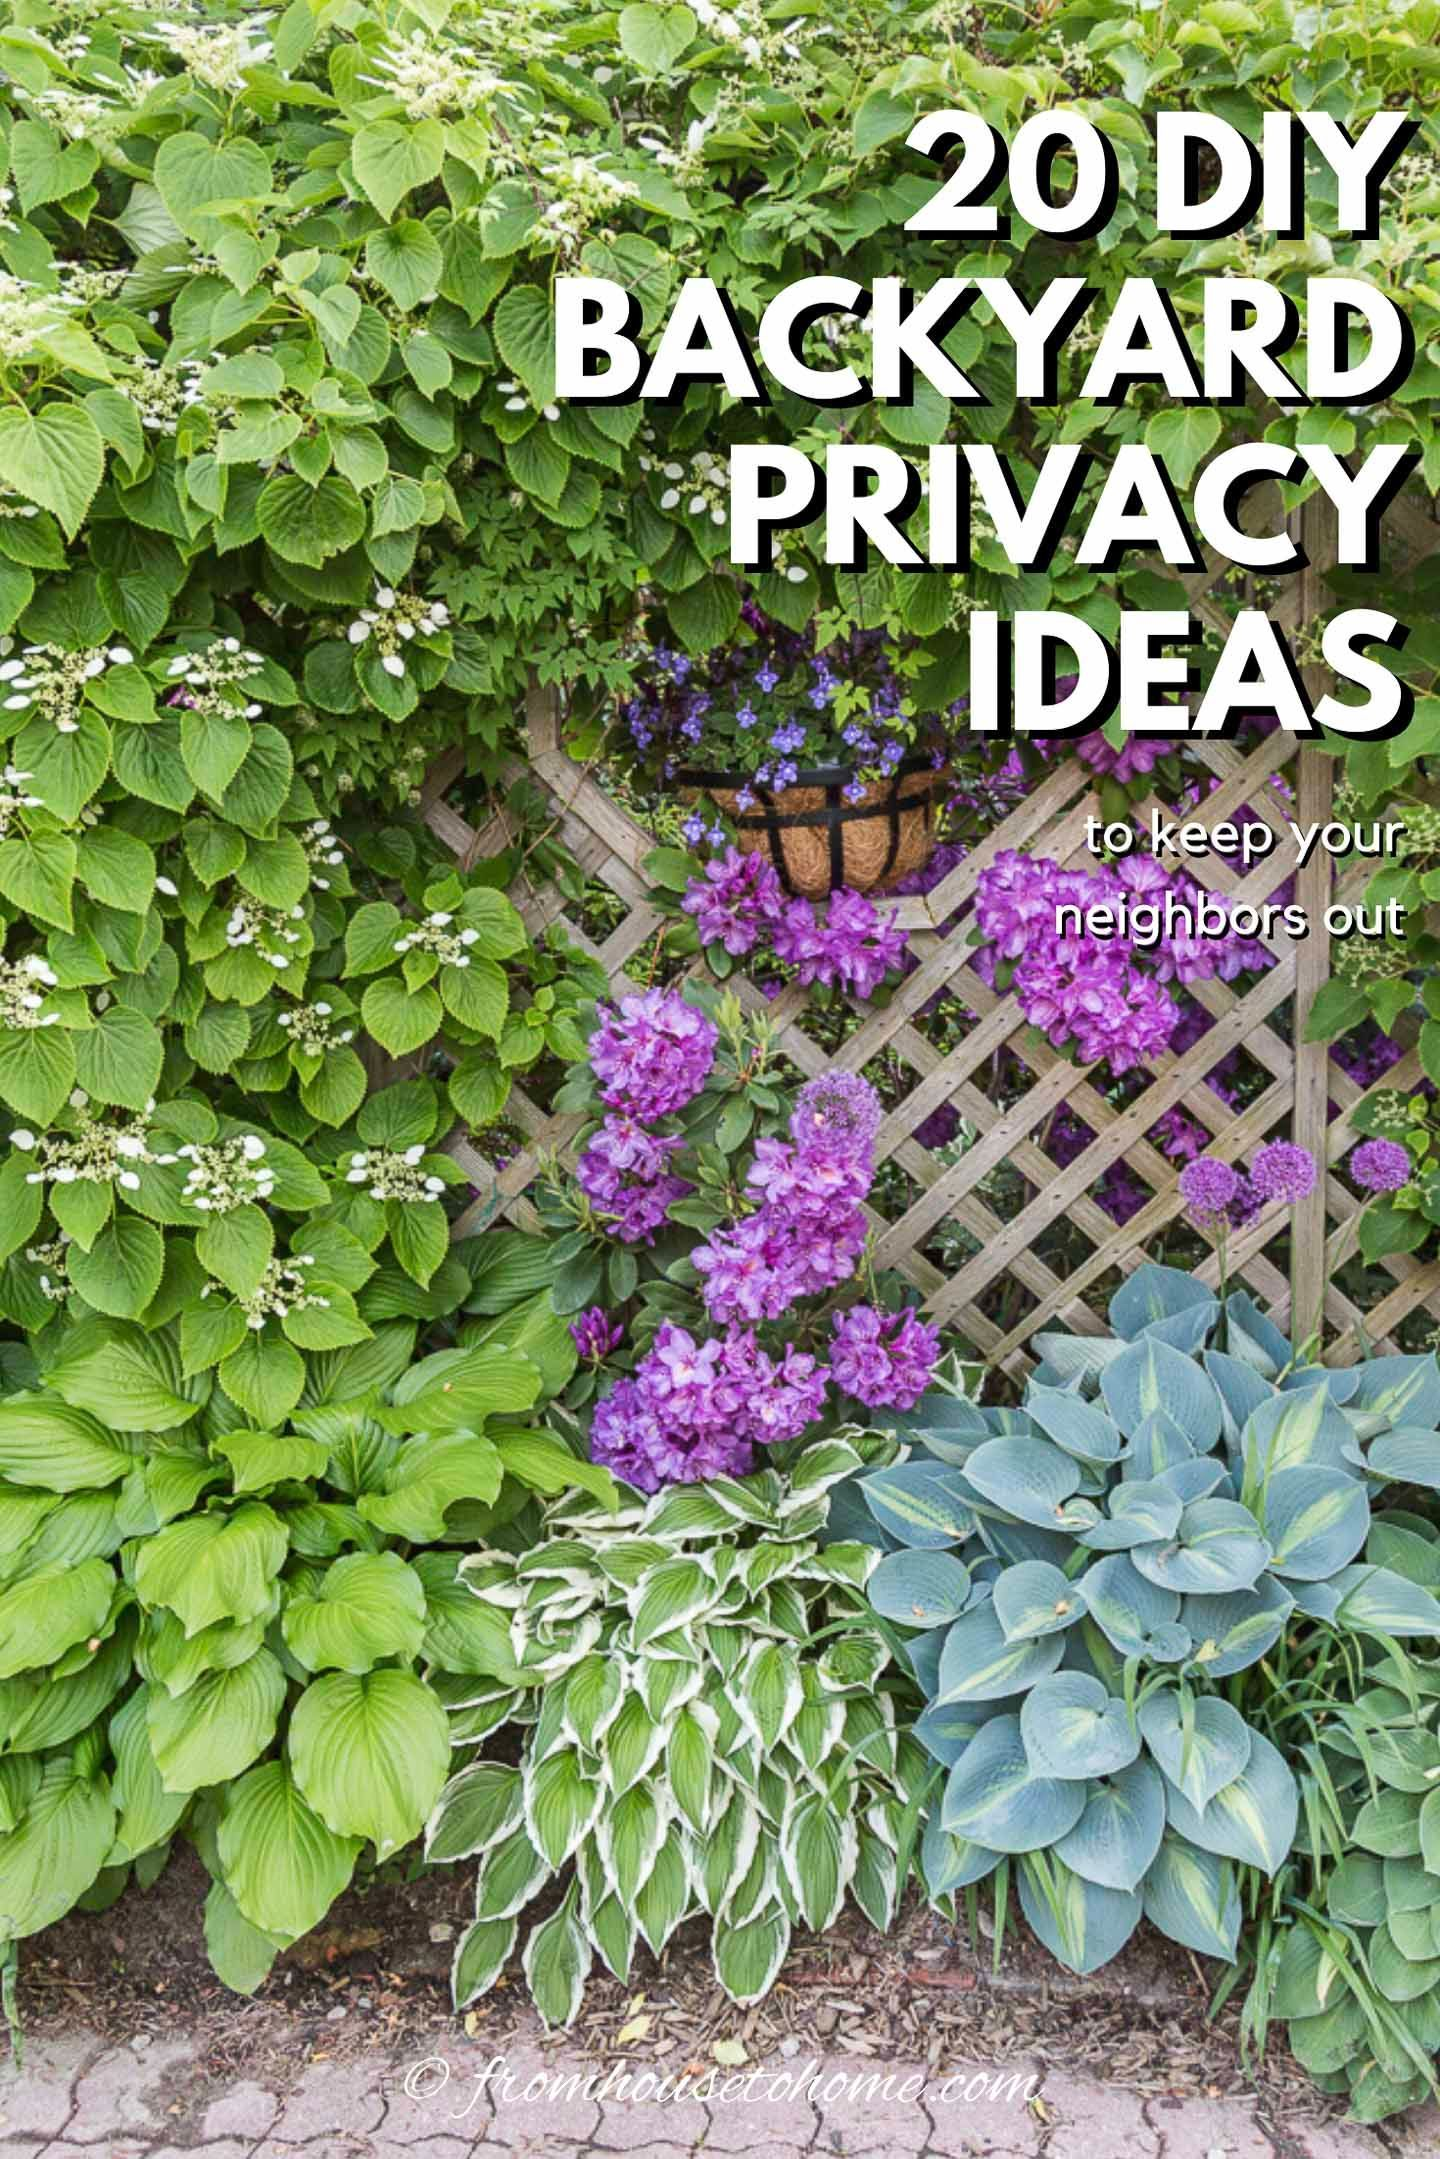 20+ Backyard Privacy Ideas For Screening Neighbors Out is part of Backyard privacy, Privacy landscaping, Outdoor privacy, Privacy screen outdoor, Garden privacy, Backyard - If your neighbors live too close for comfort, try out these backyard privacy ideas for screening the view of your yard, deck or patio